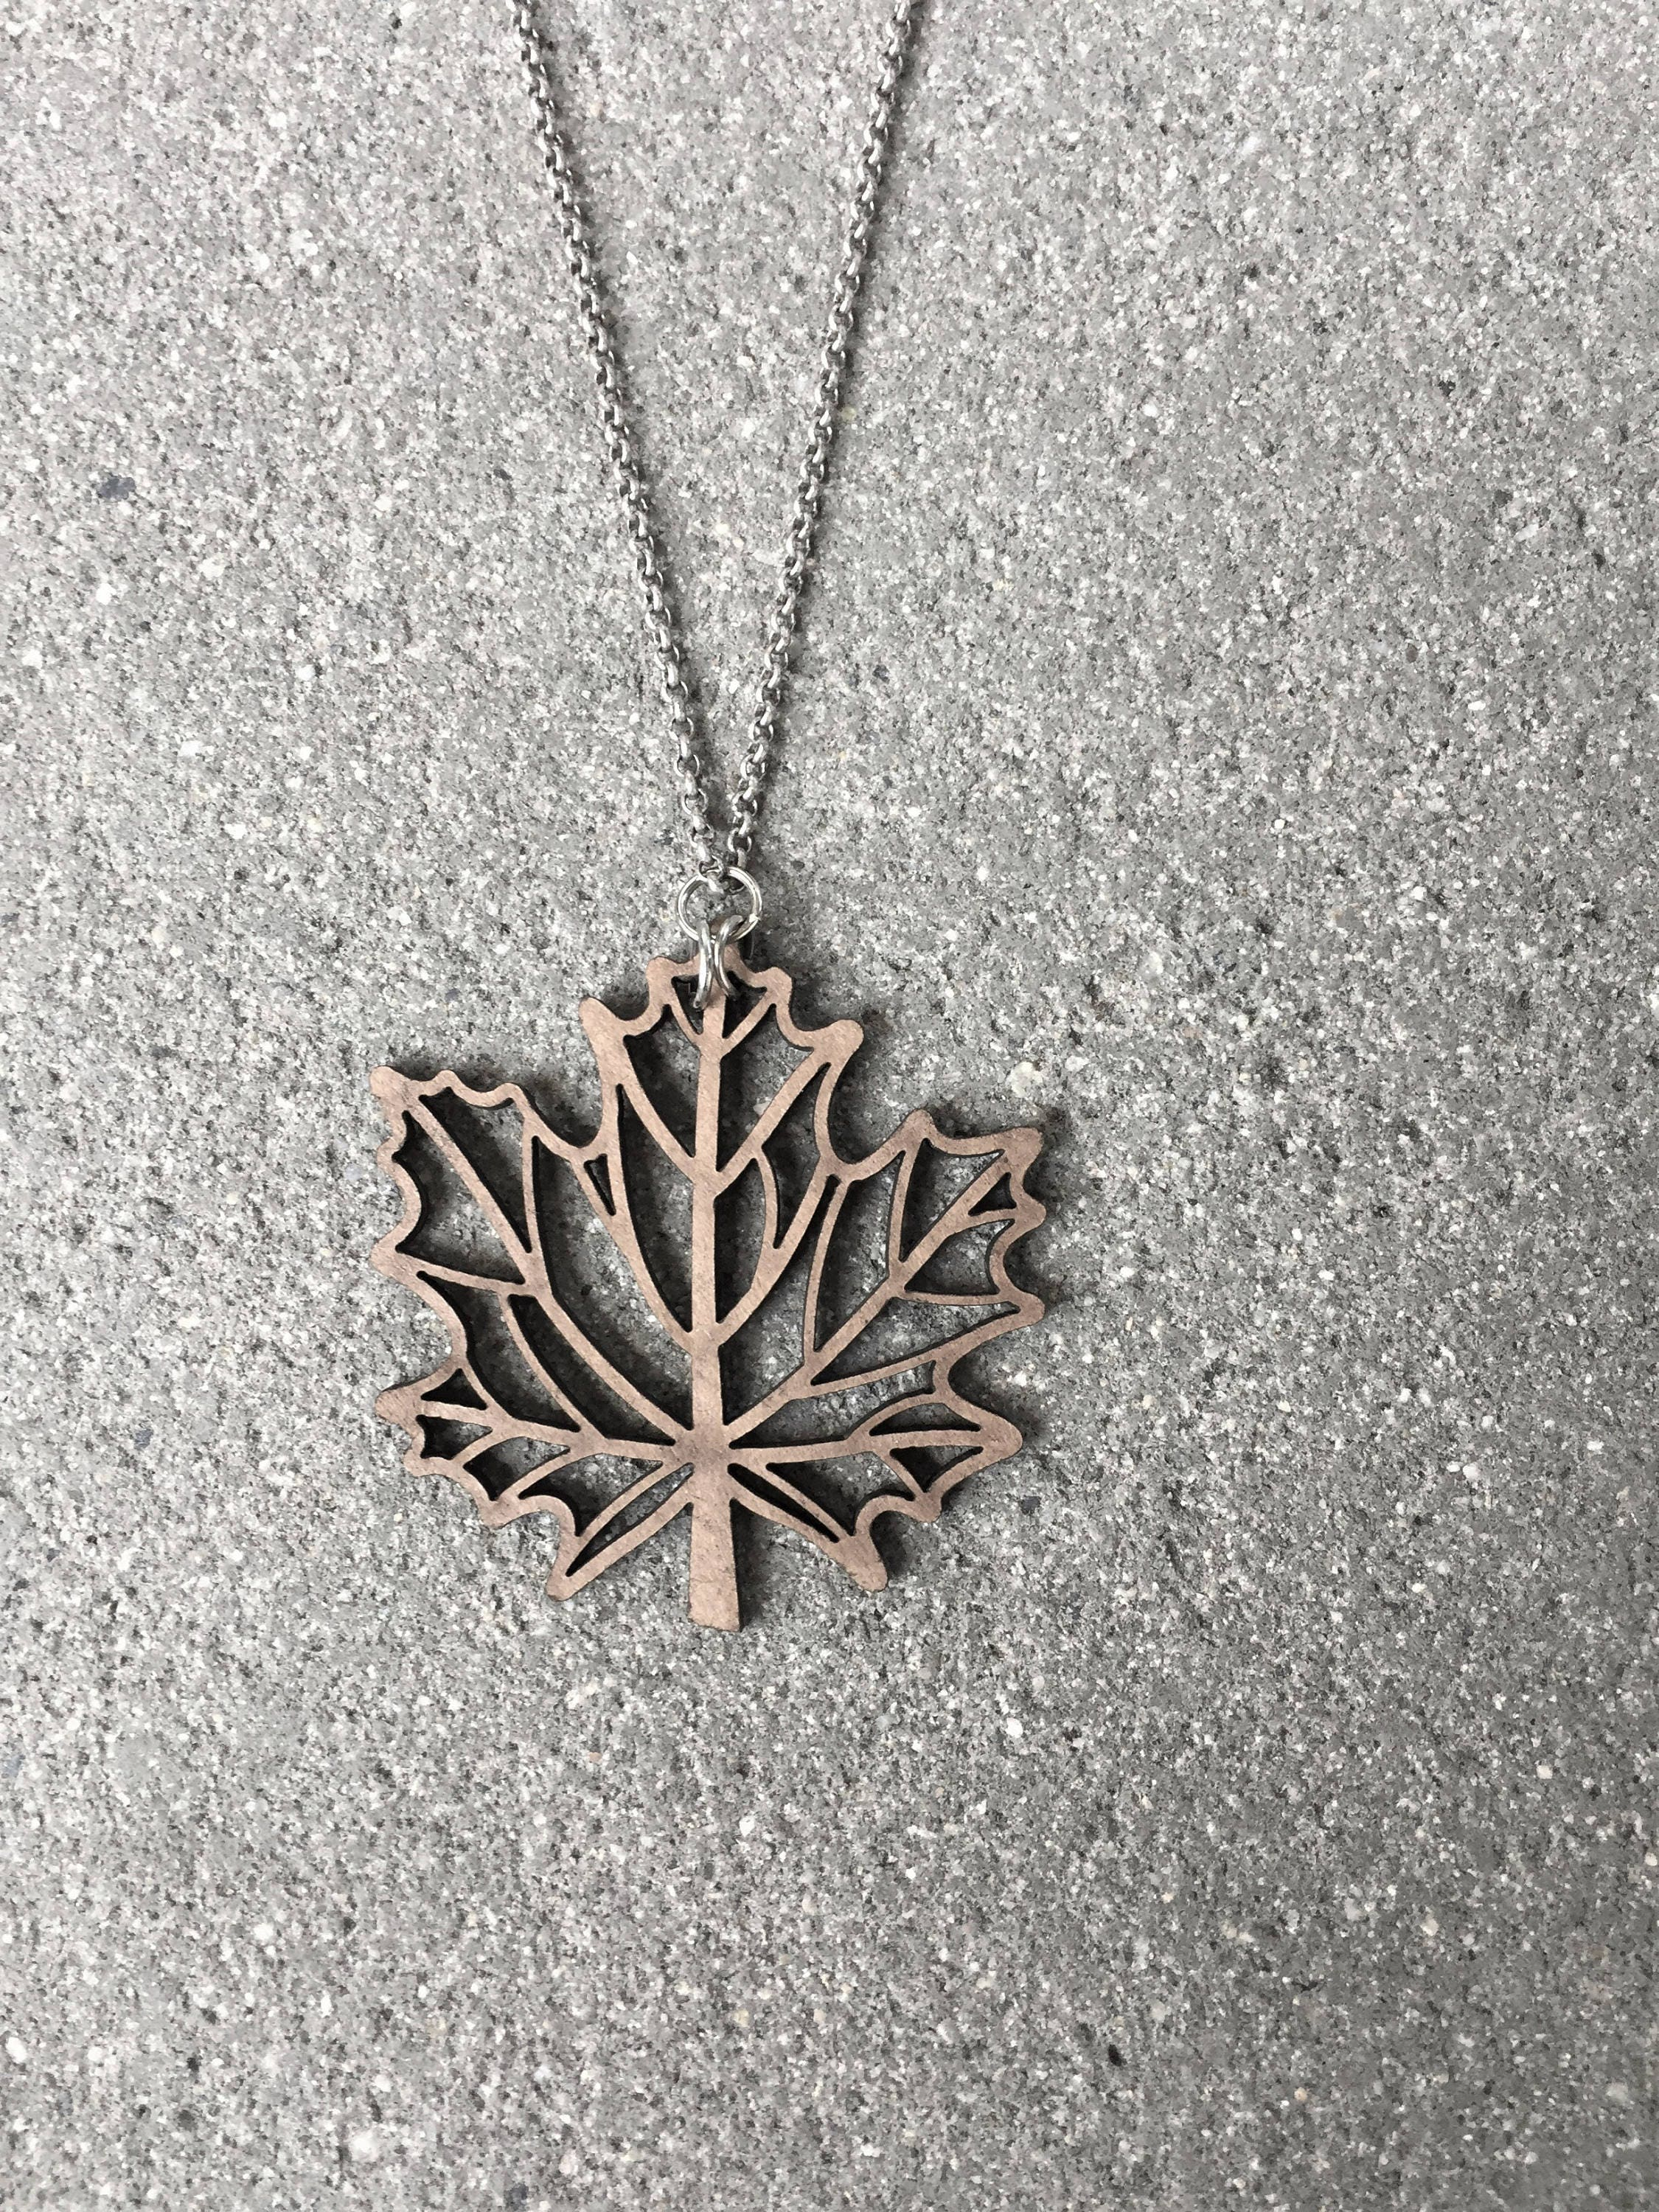 image maple leaf file zoom pendant